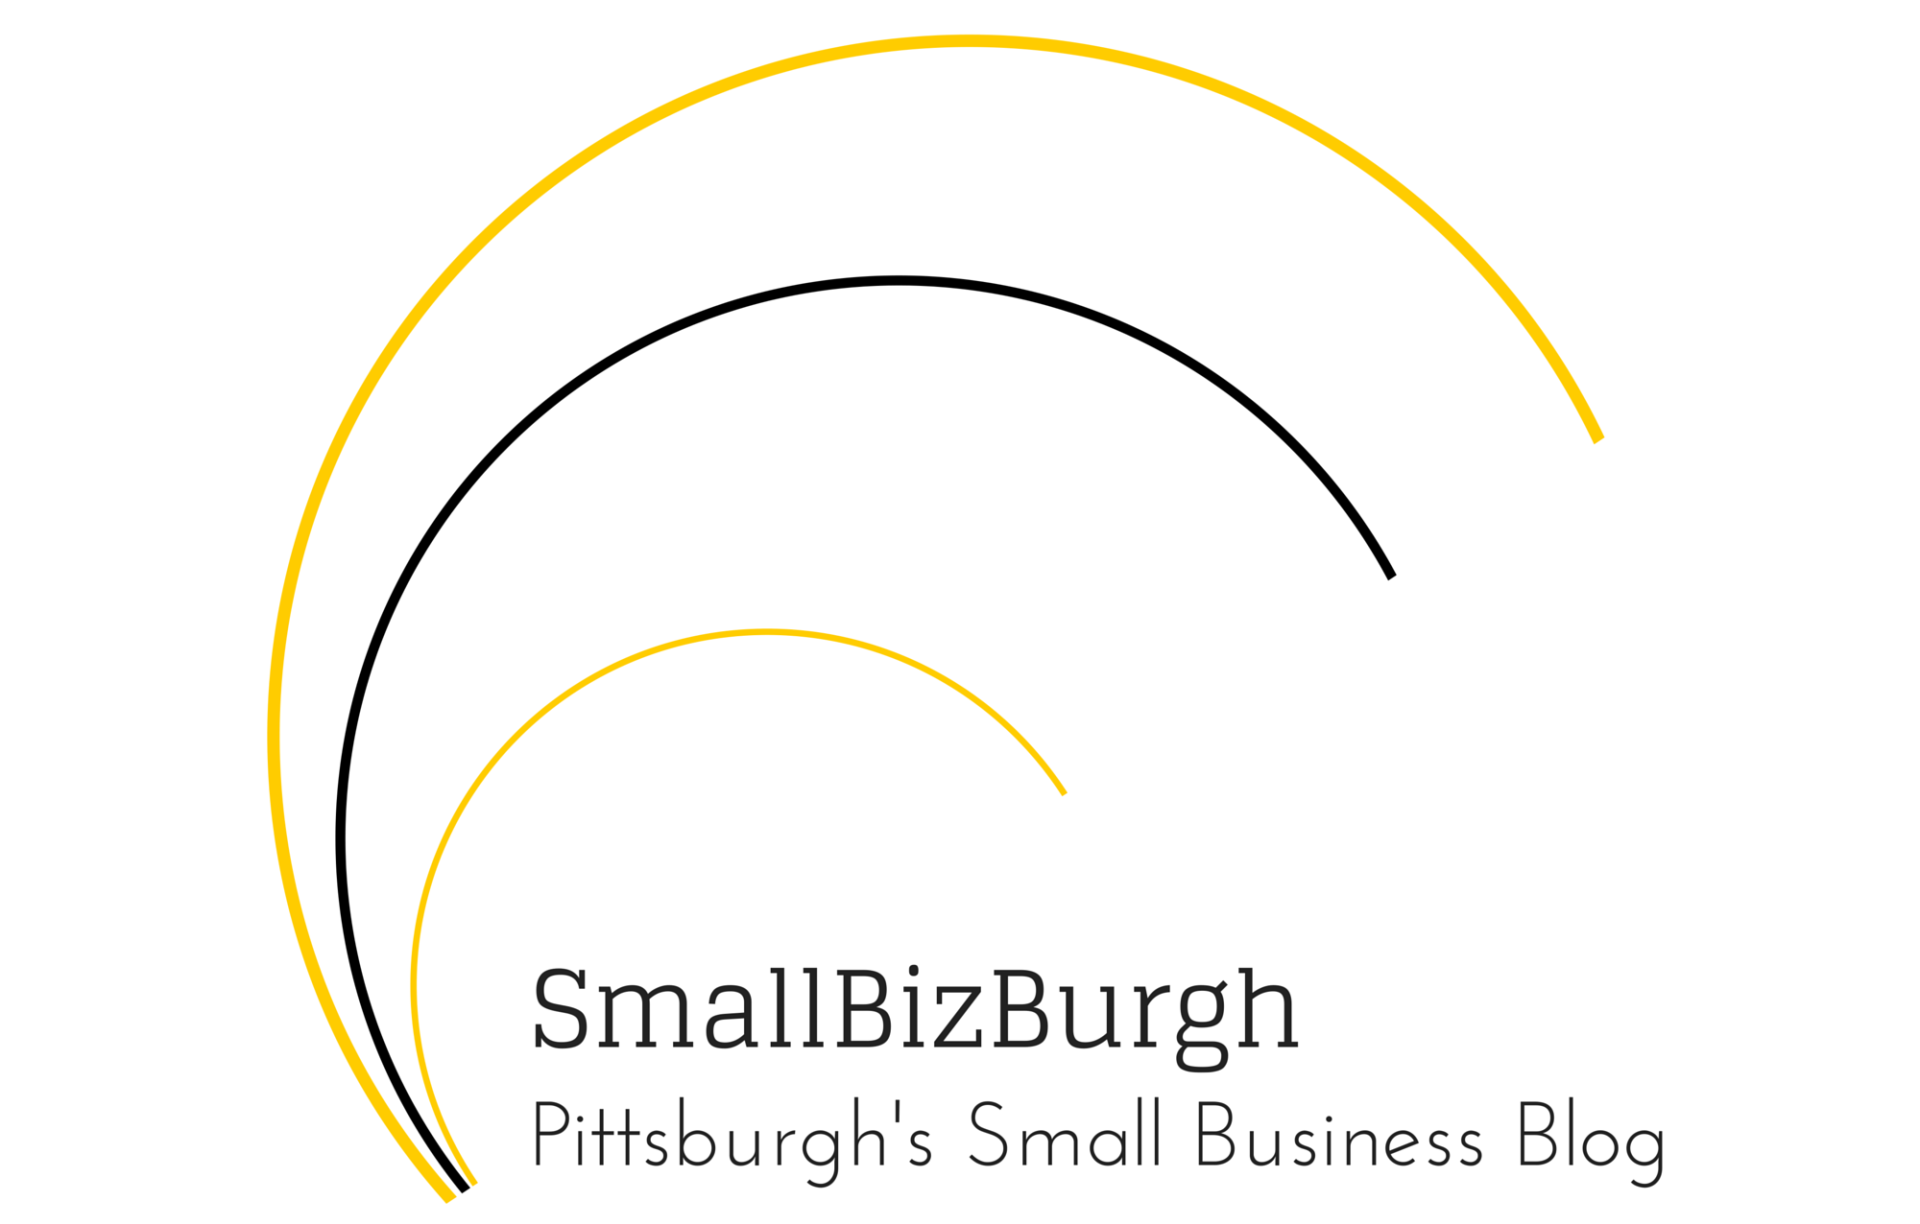 SmallBizBurgh, the Pittsburgh Small Business blog